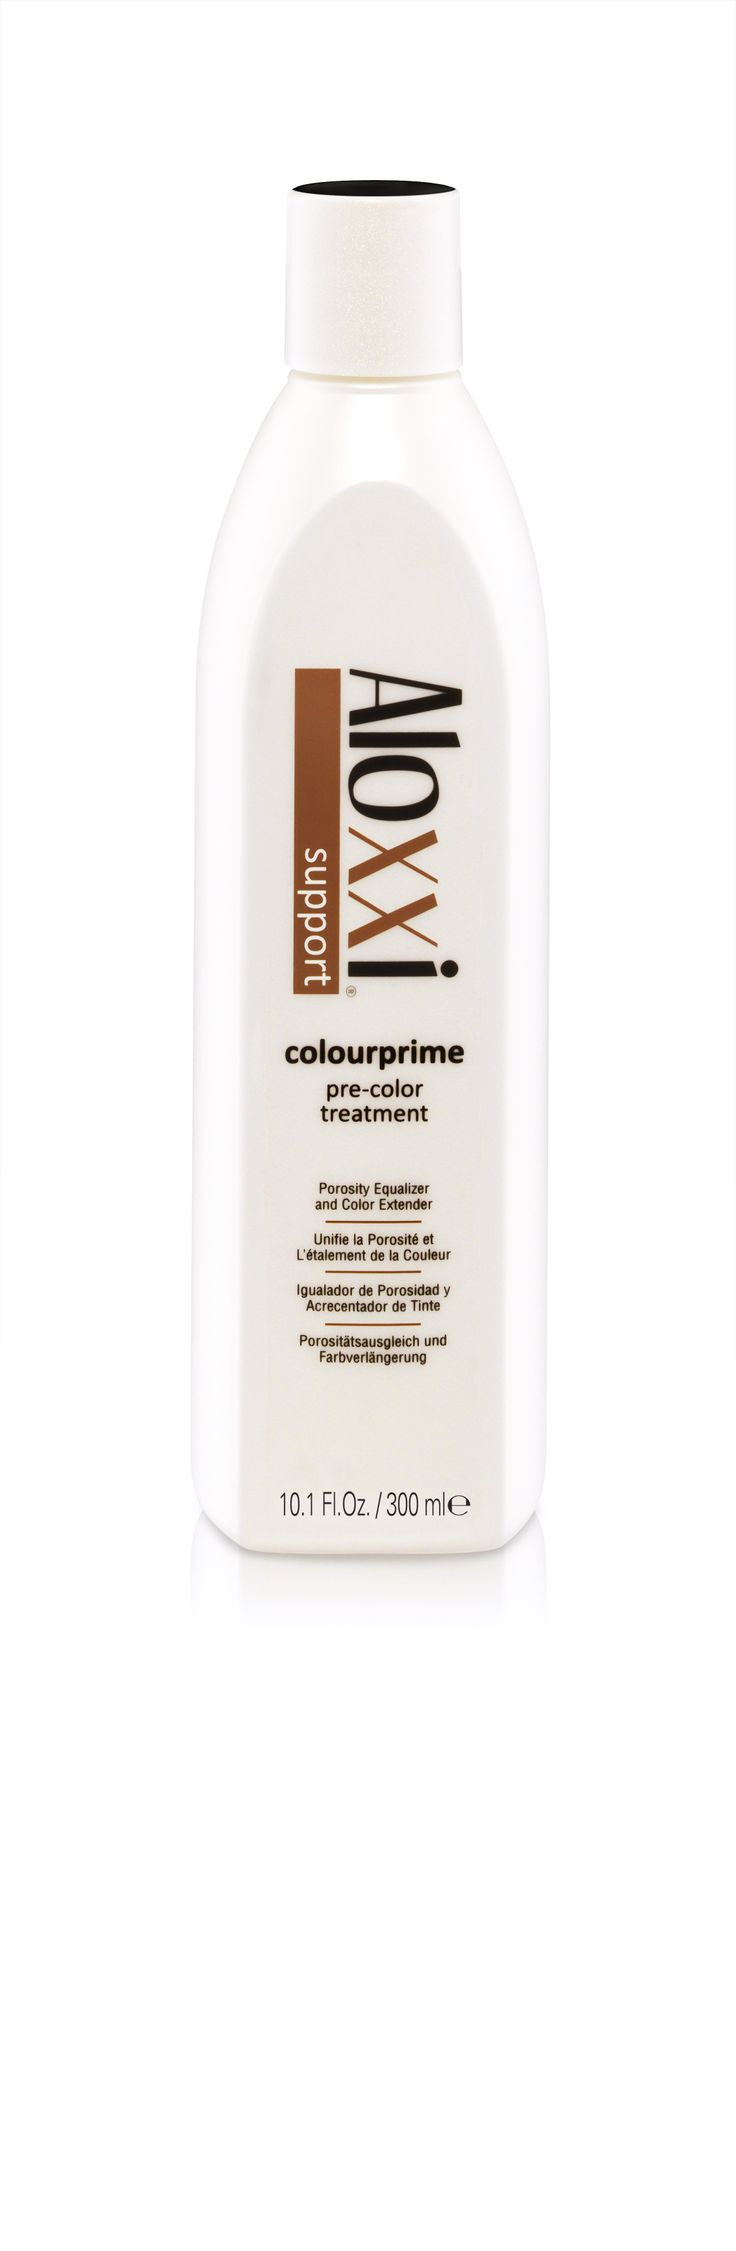 Aloxxi SUPPORT ColourPrime Pre-Colour Treatment. ColourPrime Pre-Color Treatment is a gentle herbal cleanser, scalp desensitizer, porosity equalizer and color extender all in one product. Using ColourPrime before a color service guarantees more even, longer-lasting results.  professional hair care | professional hair color | professional hair products